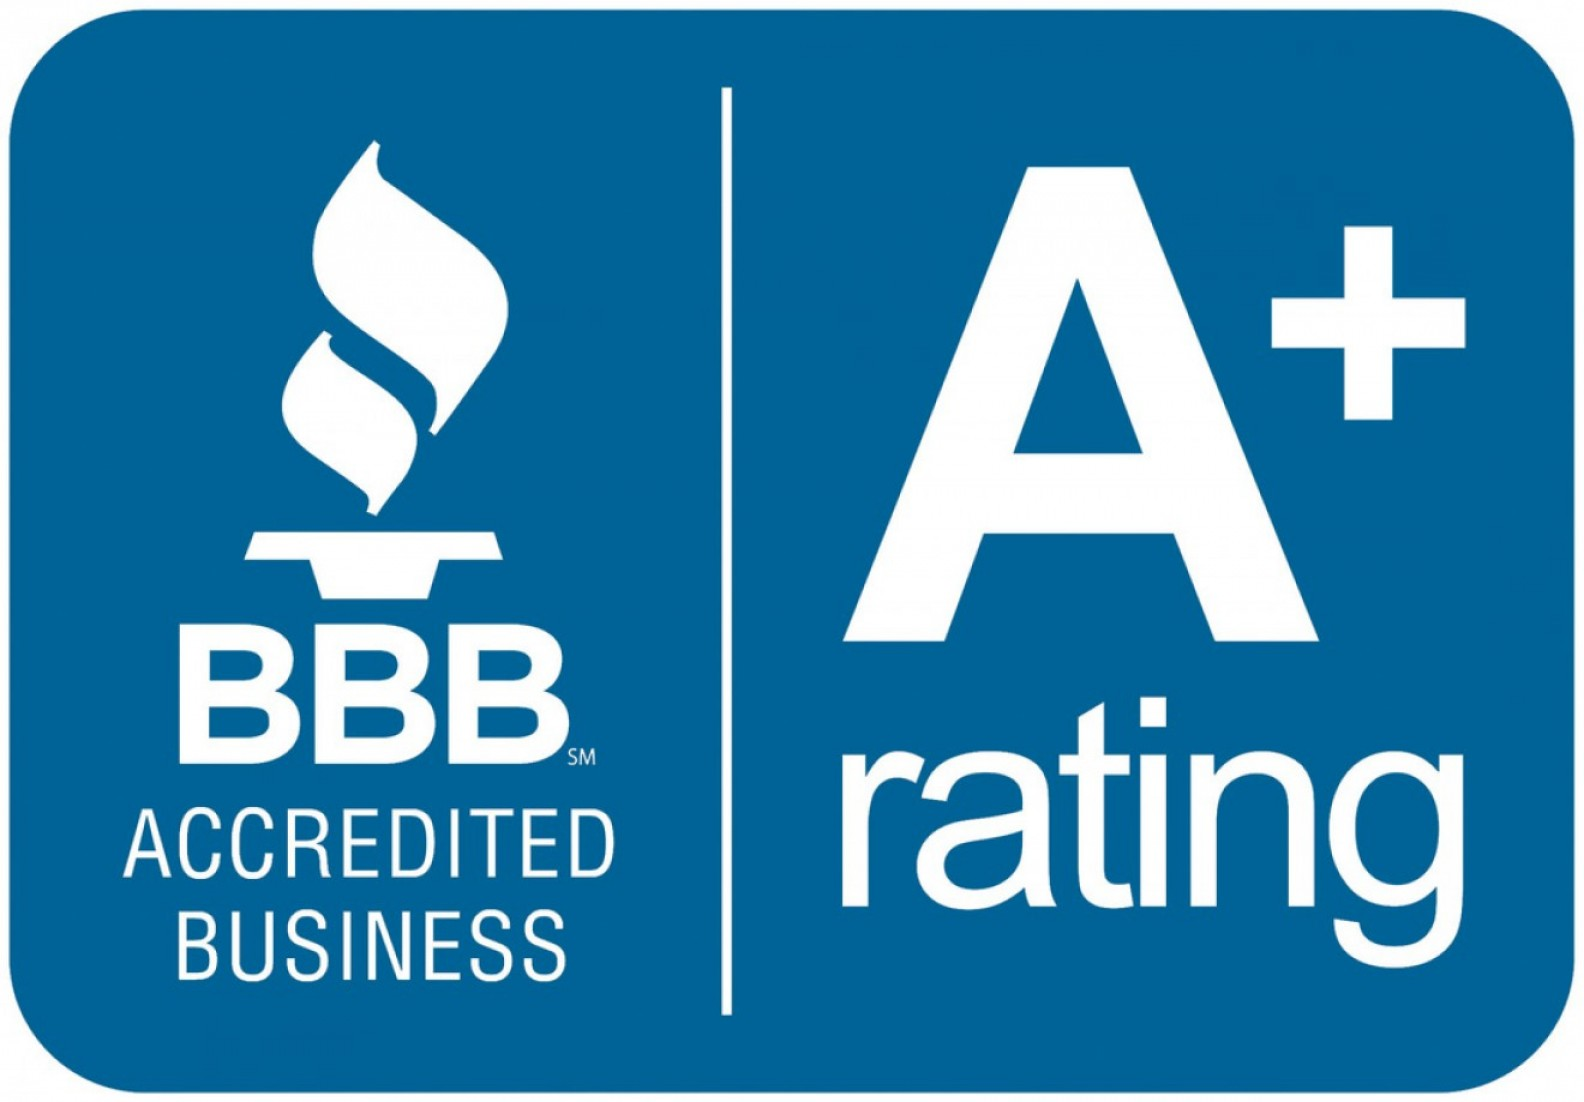 BBB Accredited Logo Vector: What Rating Does Your Roof Company Have With The Better Business Bureau